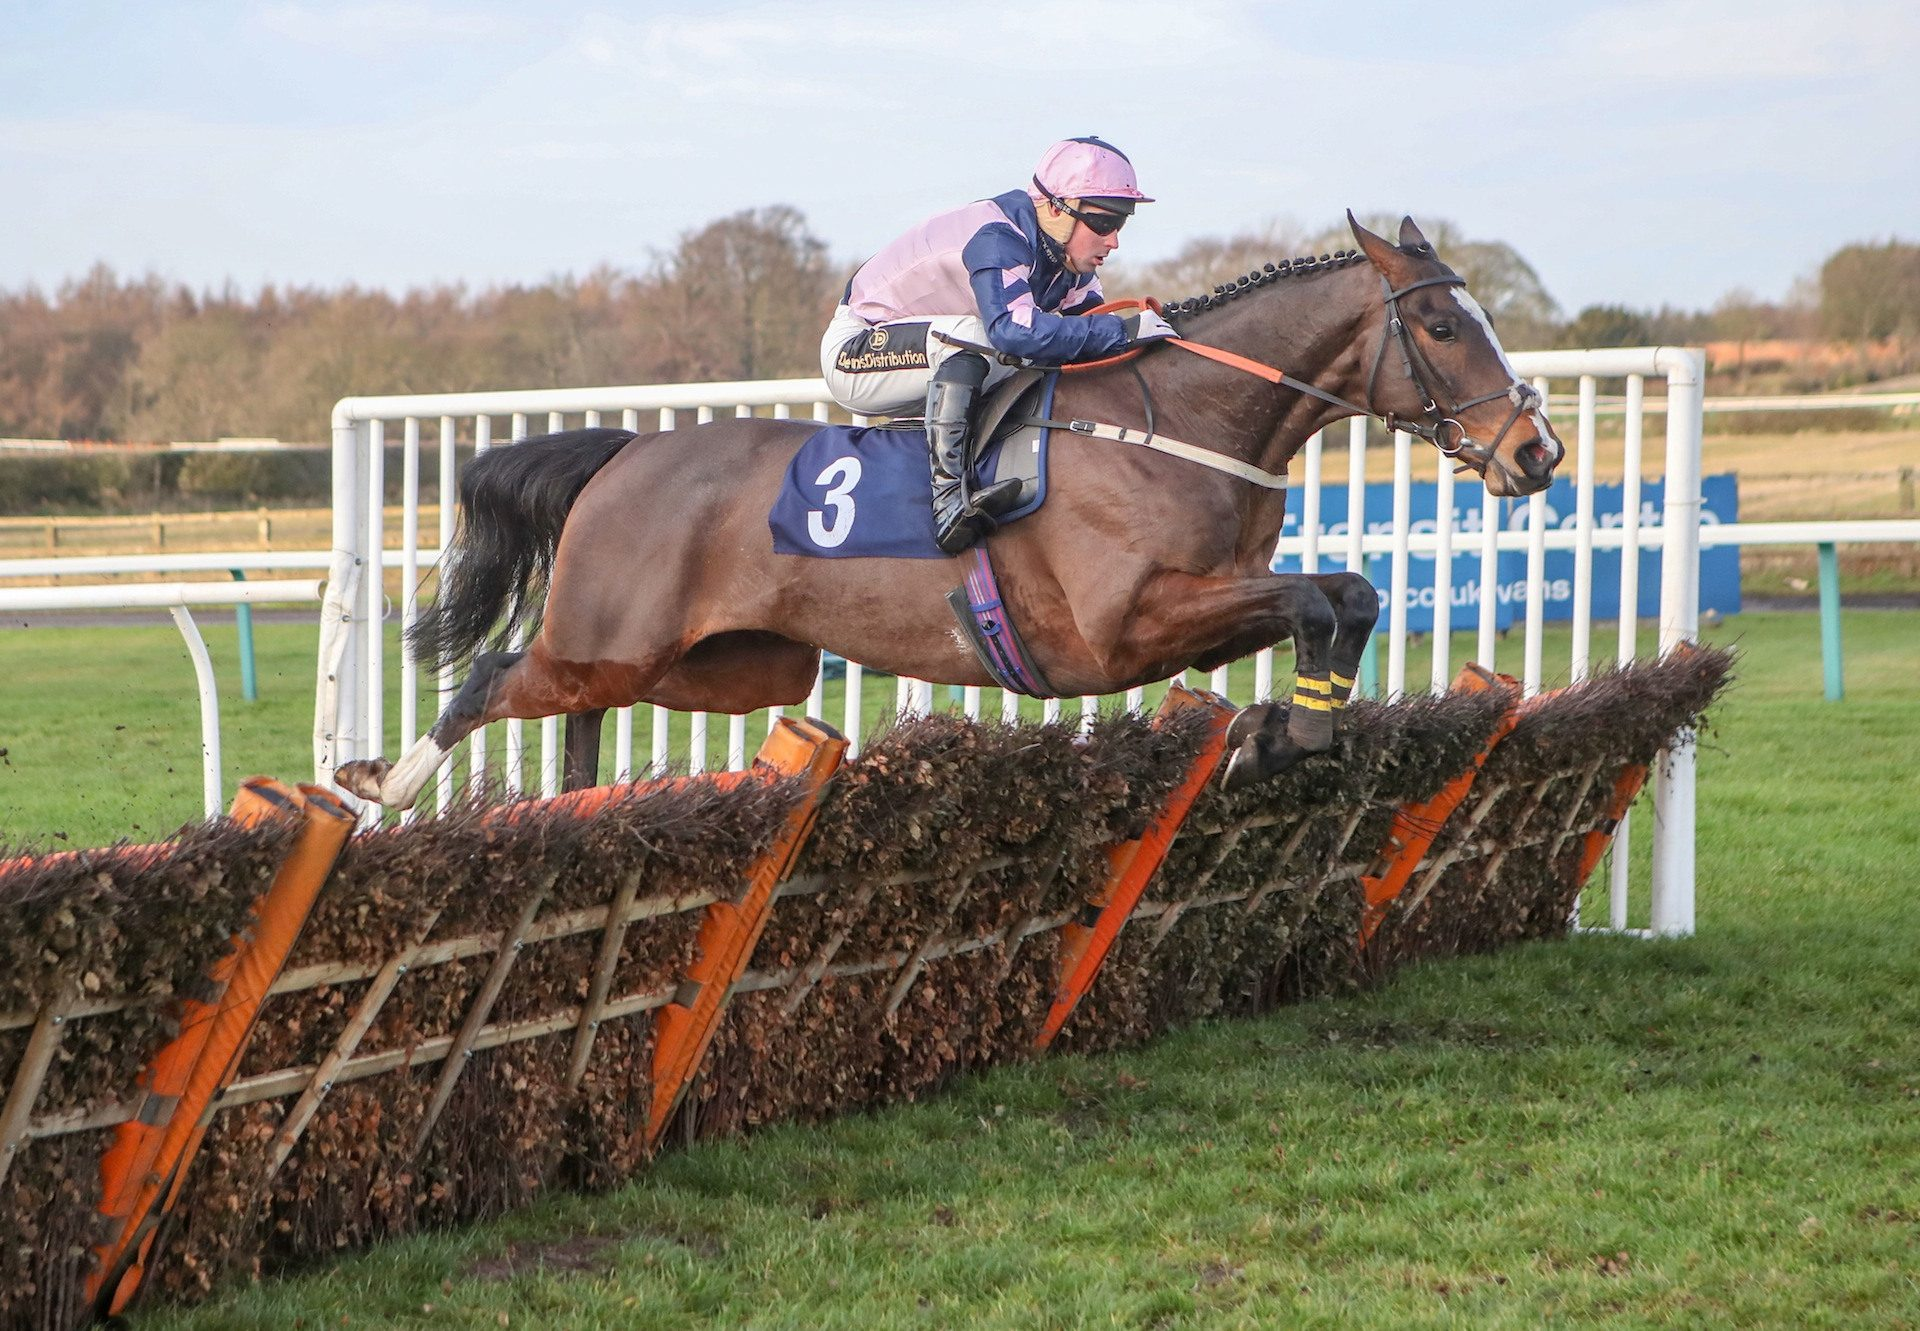 Lord Yeats (Yeats) Wins His Maiden Hurdle Unchallenged